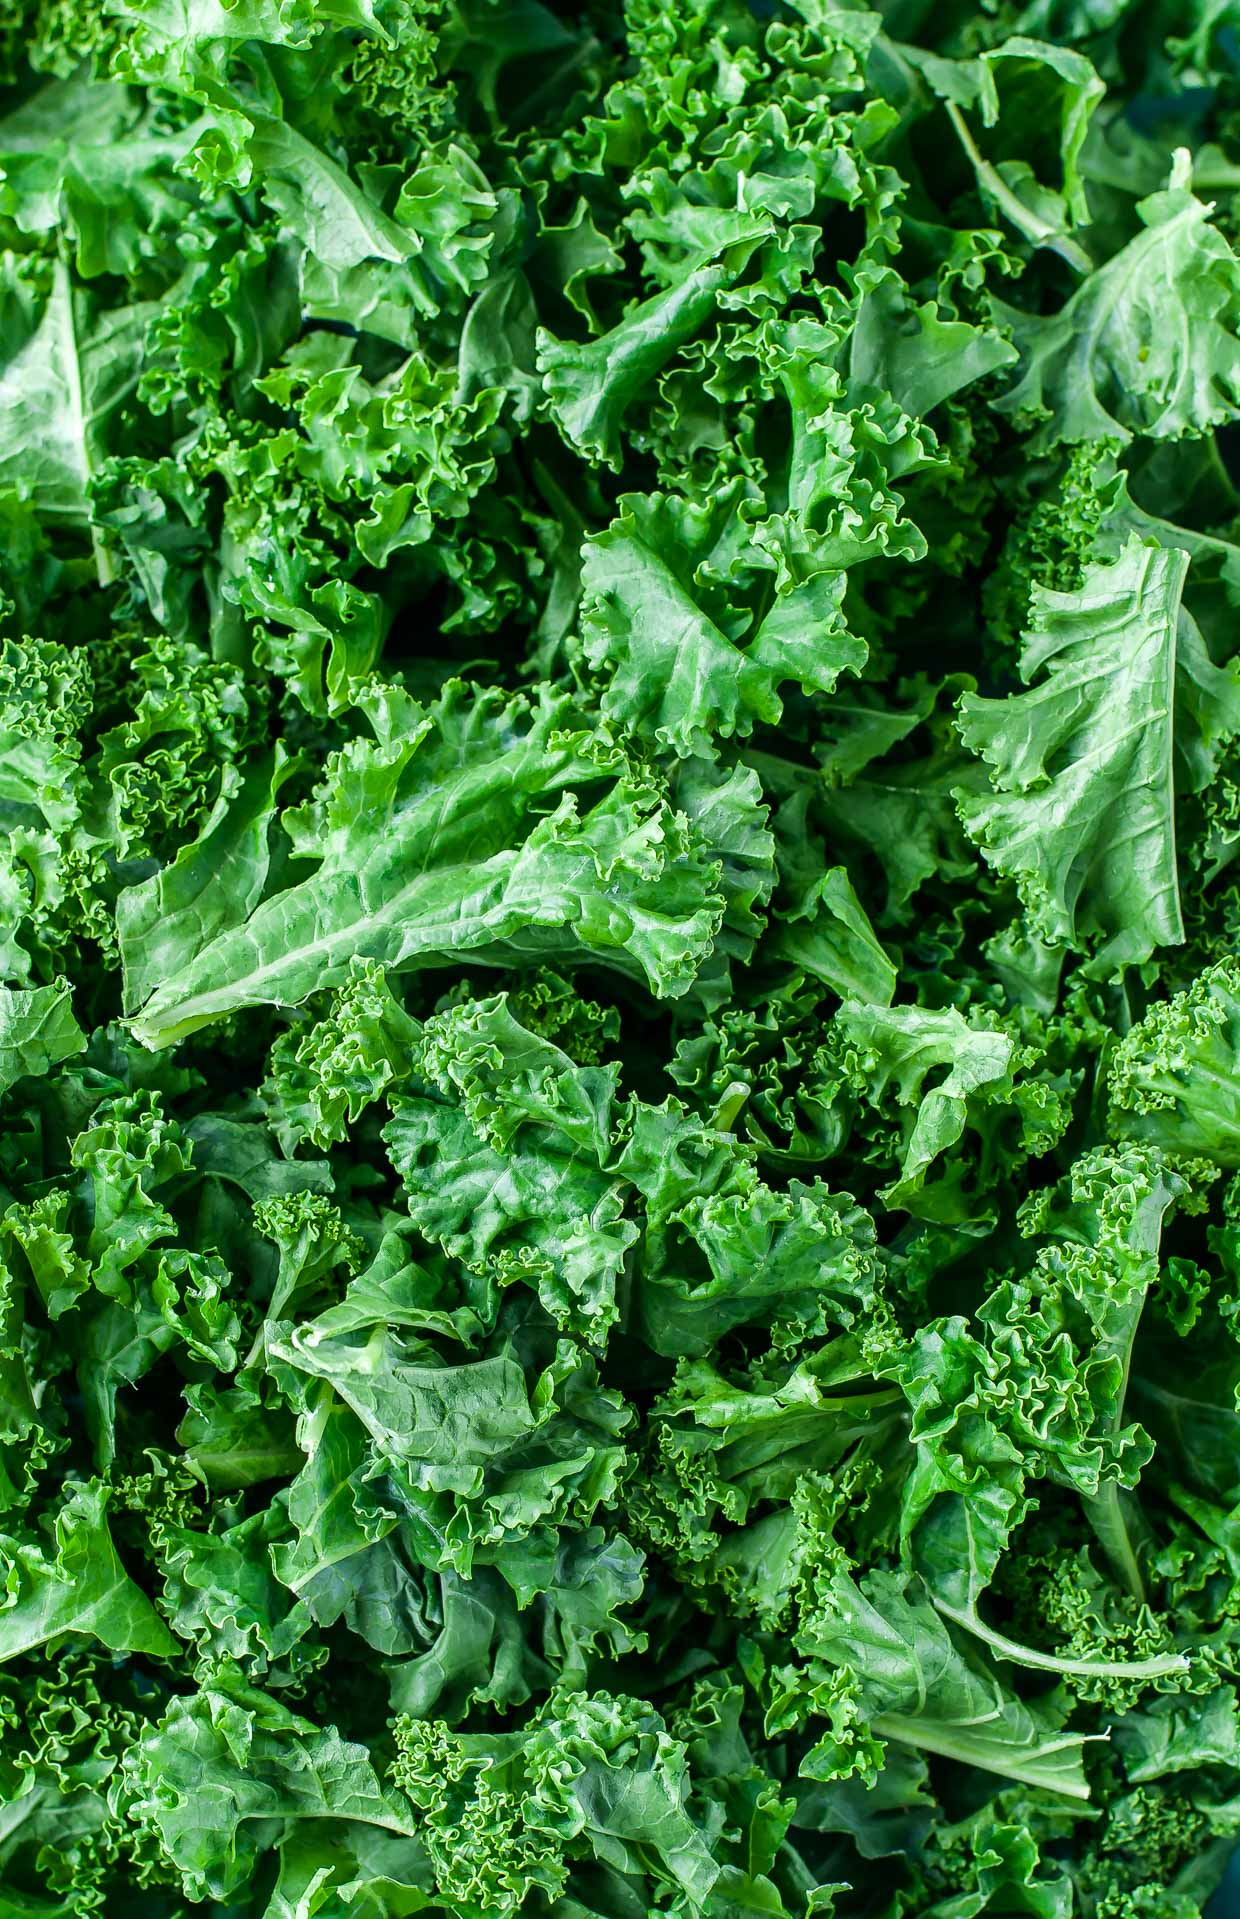 10 Tasty Ways to Eat More Kale